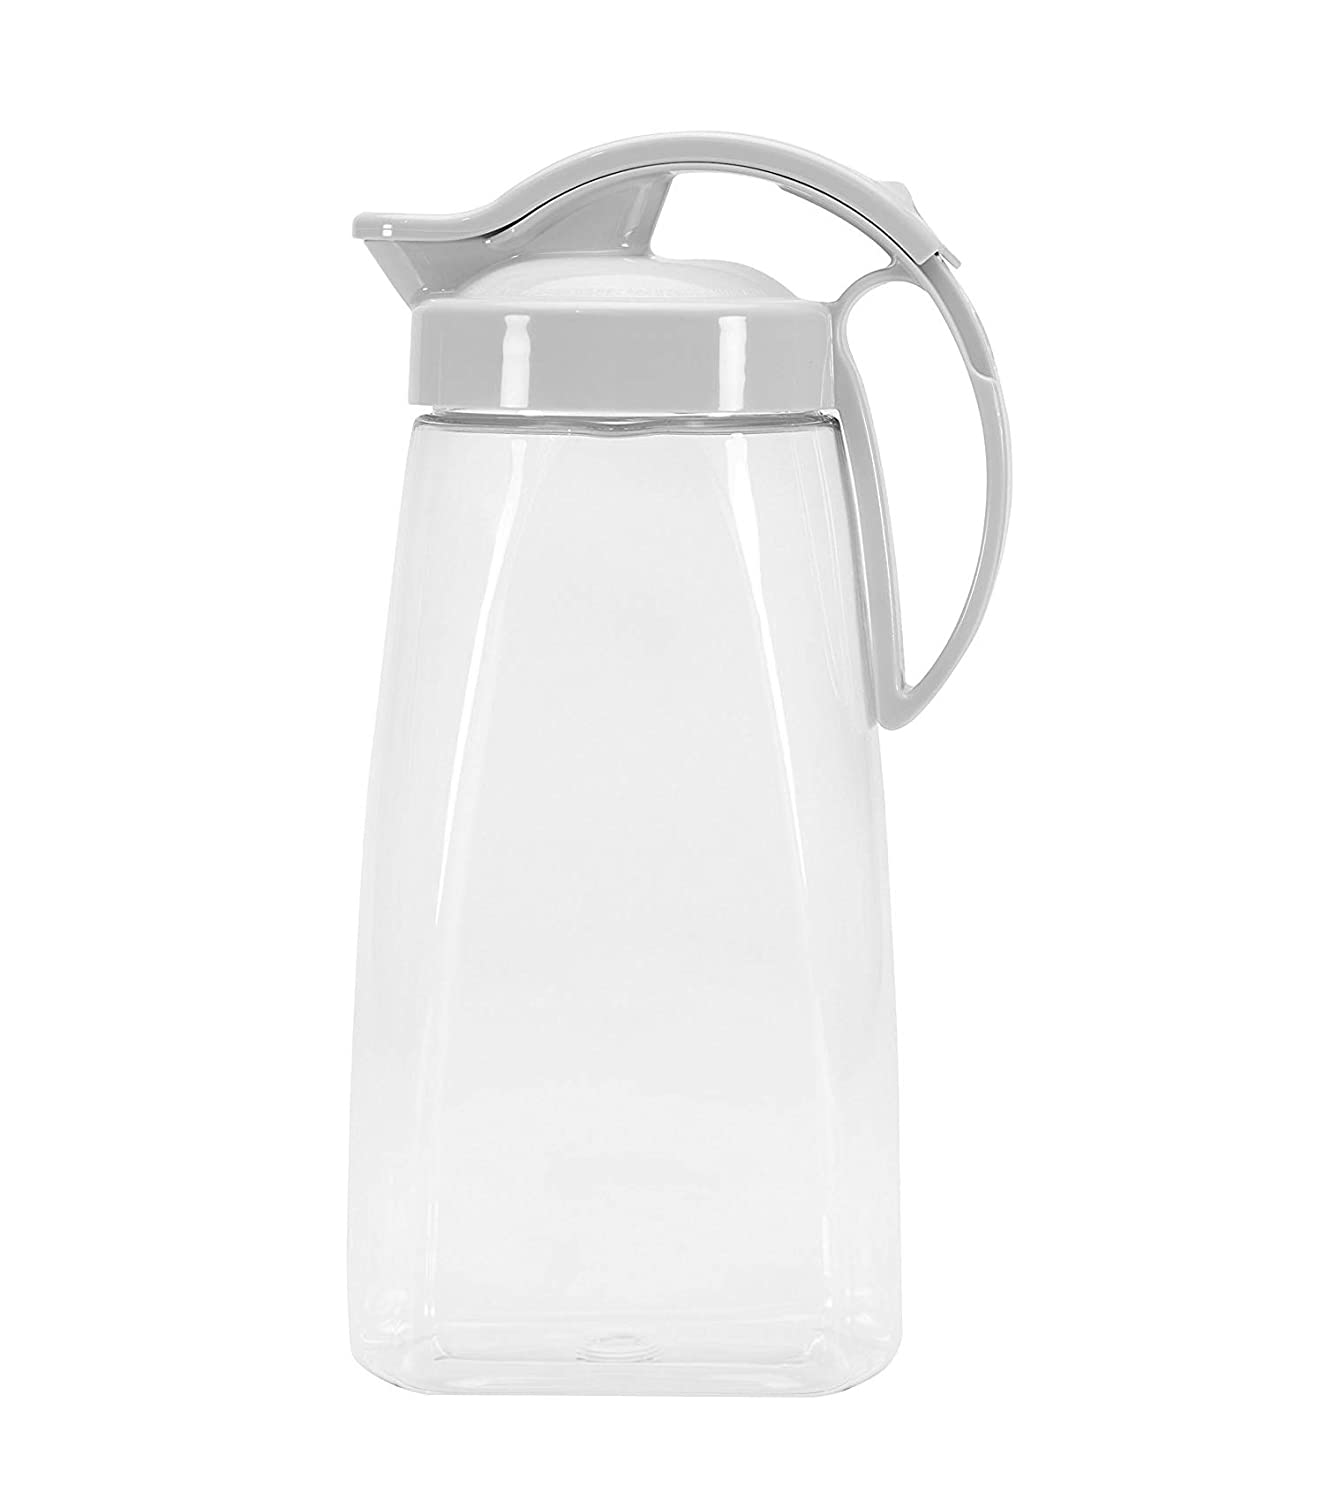 High Heat Resistant One-touch Airtight Pitcher 2.3QT (74oz) for Water, Coffee, Tea, Other Hot or Cold Beverages - Leak Proof & Space Saving, Dishwasher Safe, BPA Free